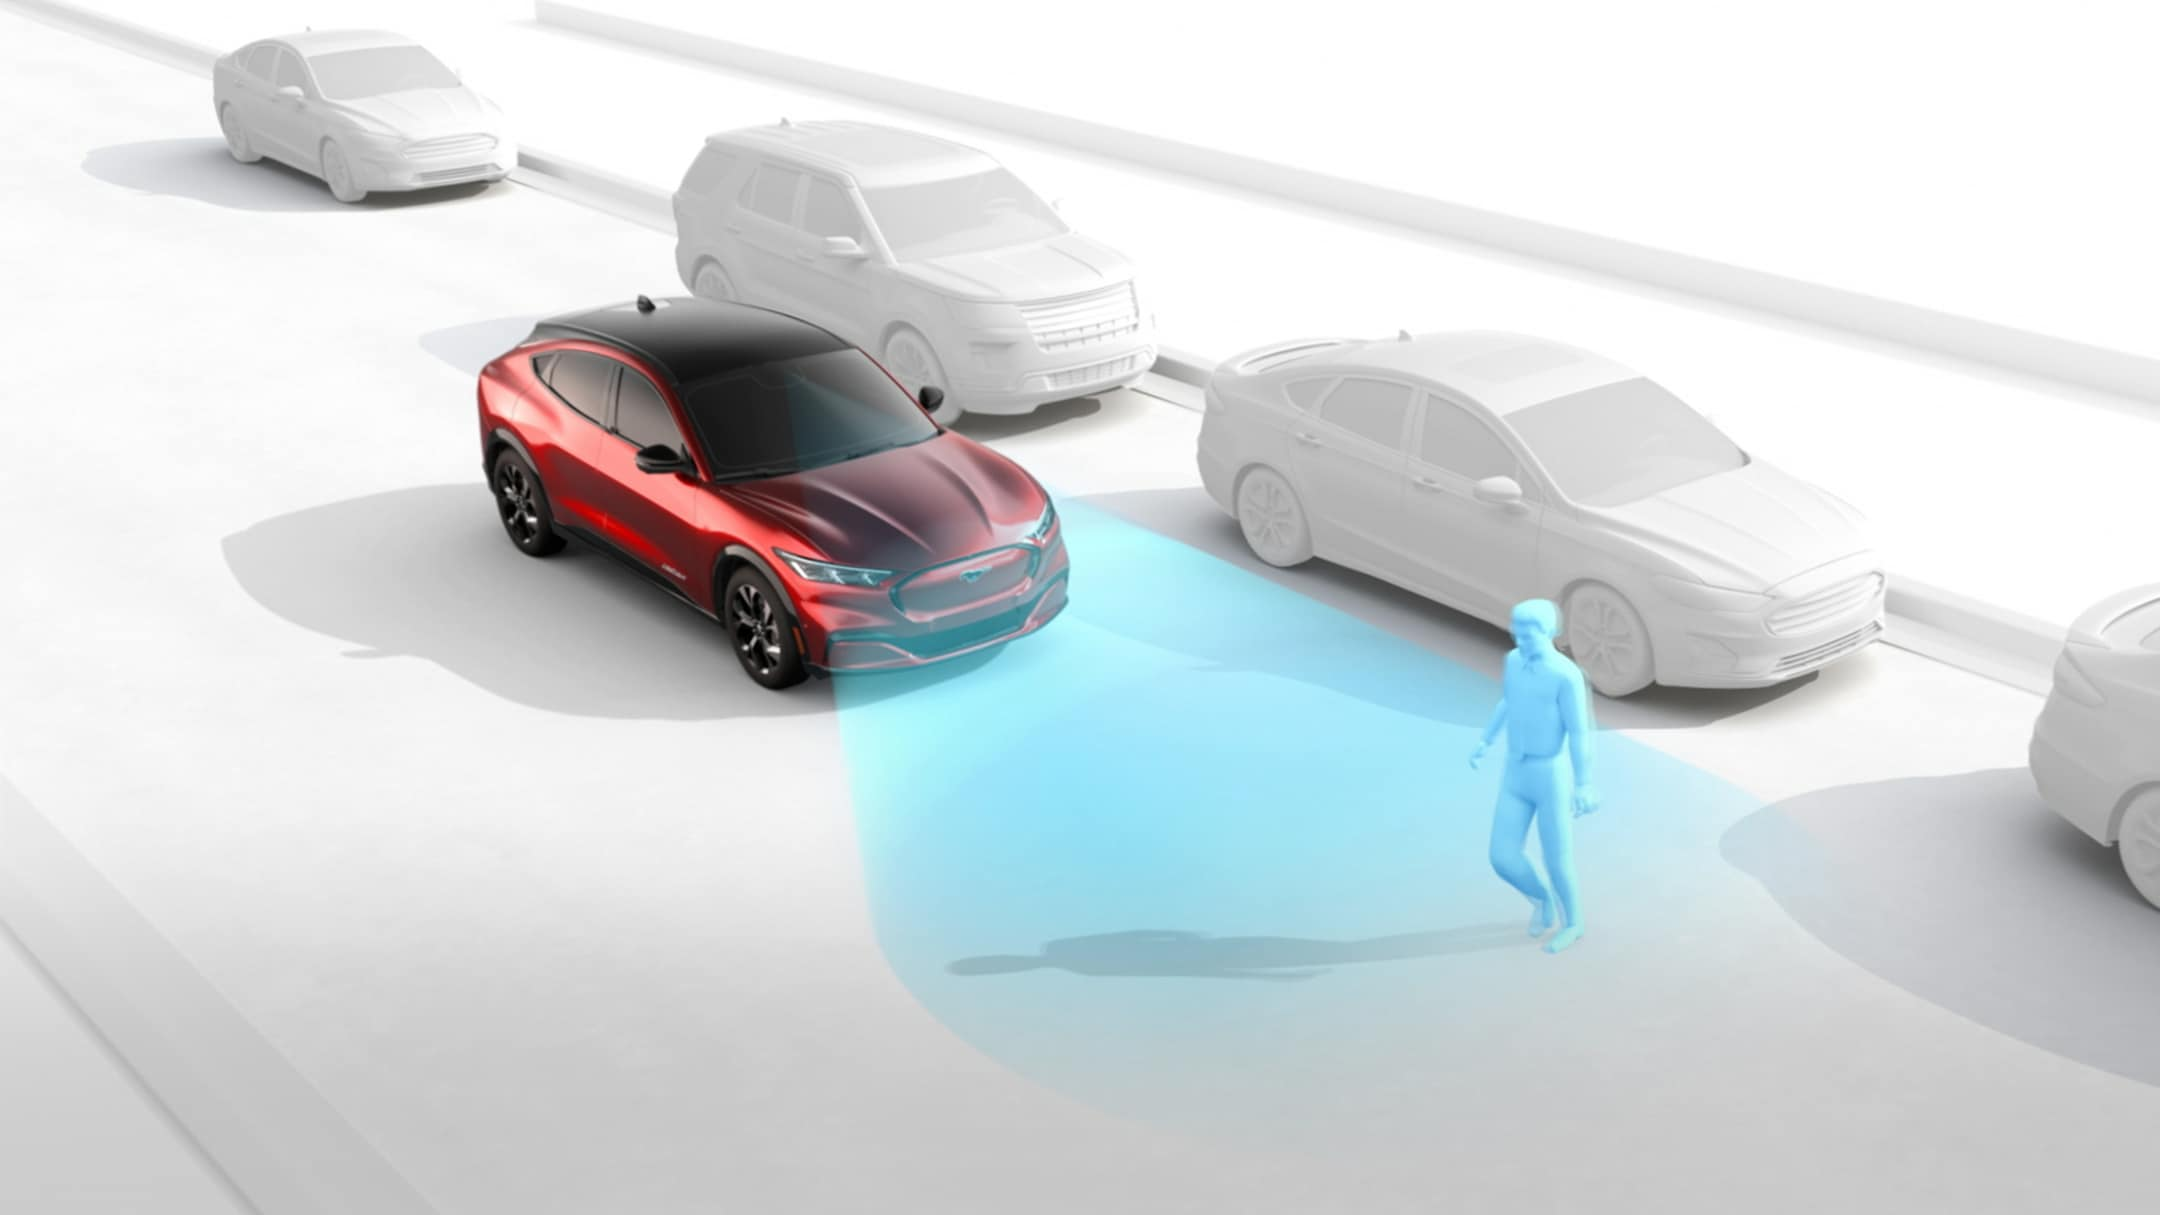 All-New Ford Mustang Mach-E detecting a pedestrian with the Pre-Collision Assist feature